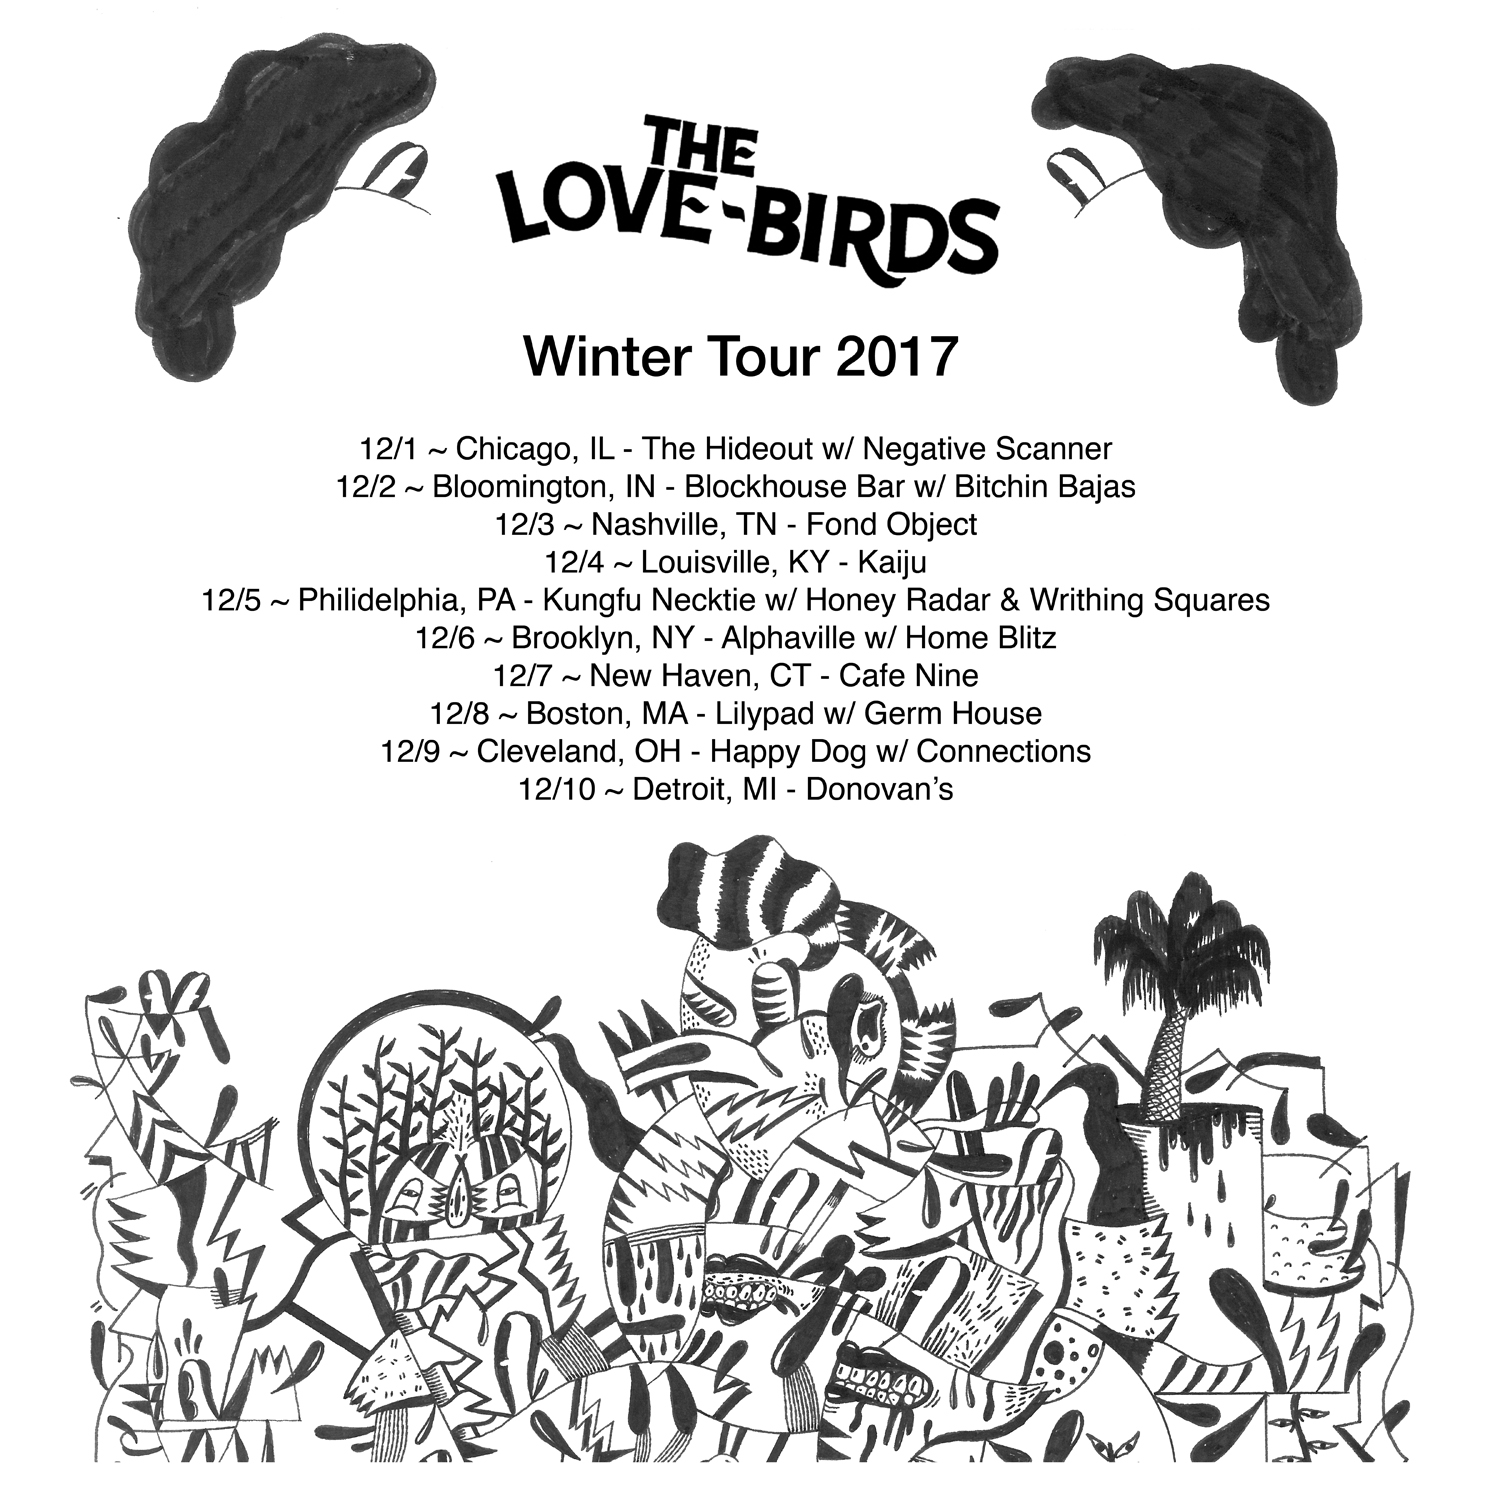 the-love-birds-winter-tour-poster.5x5.jpg